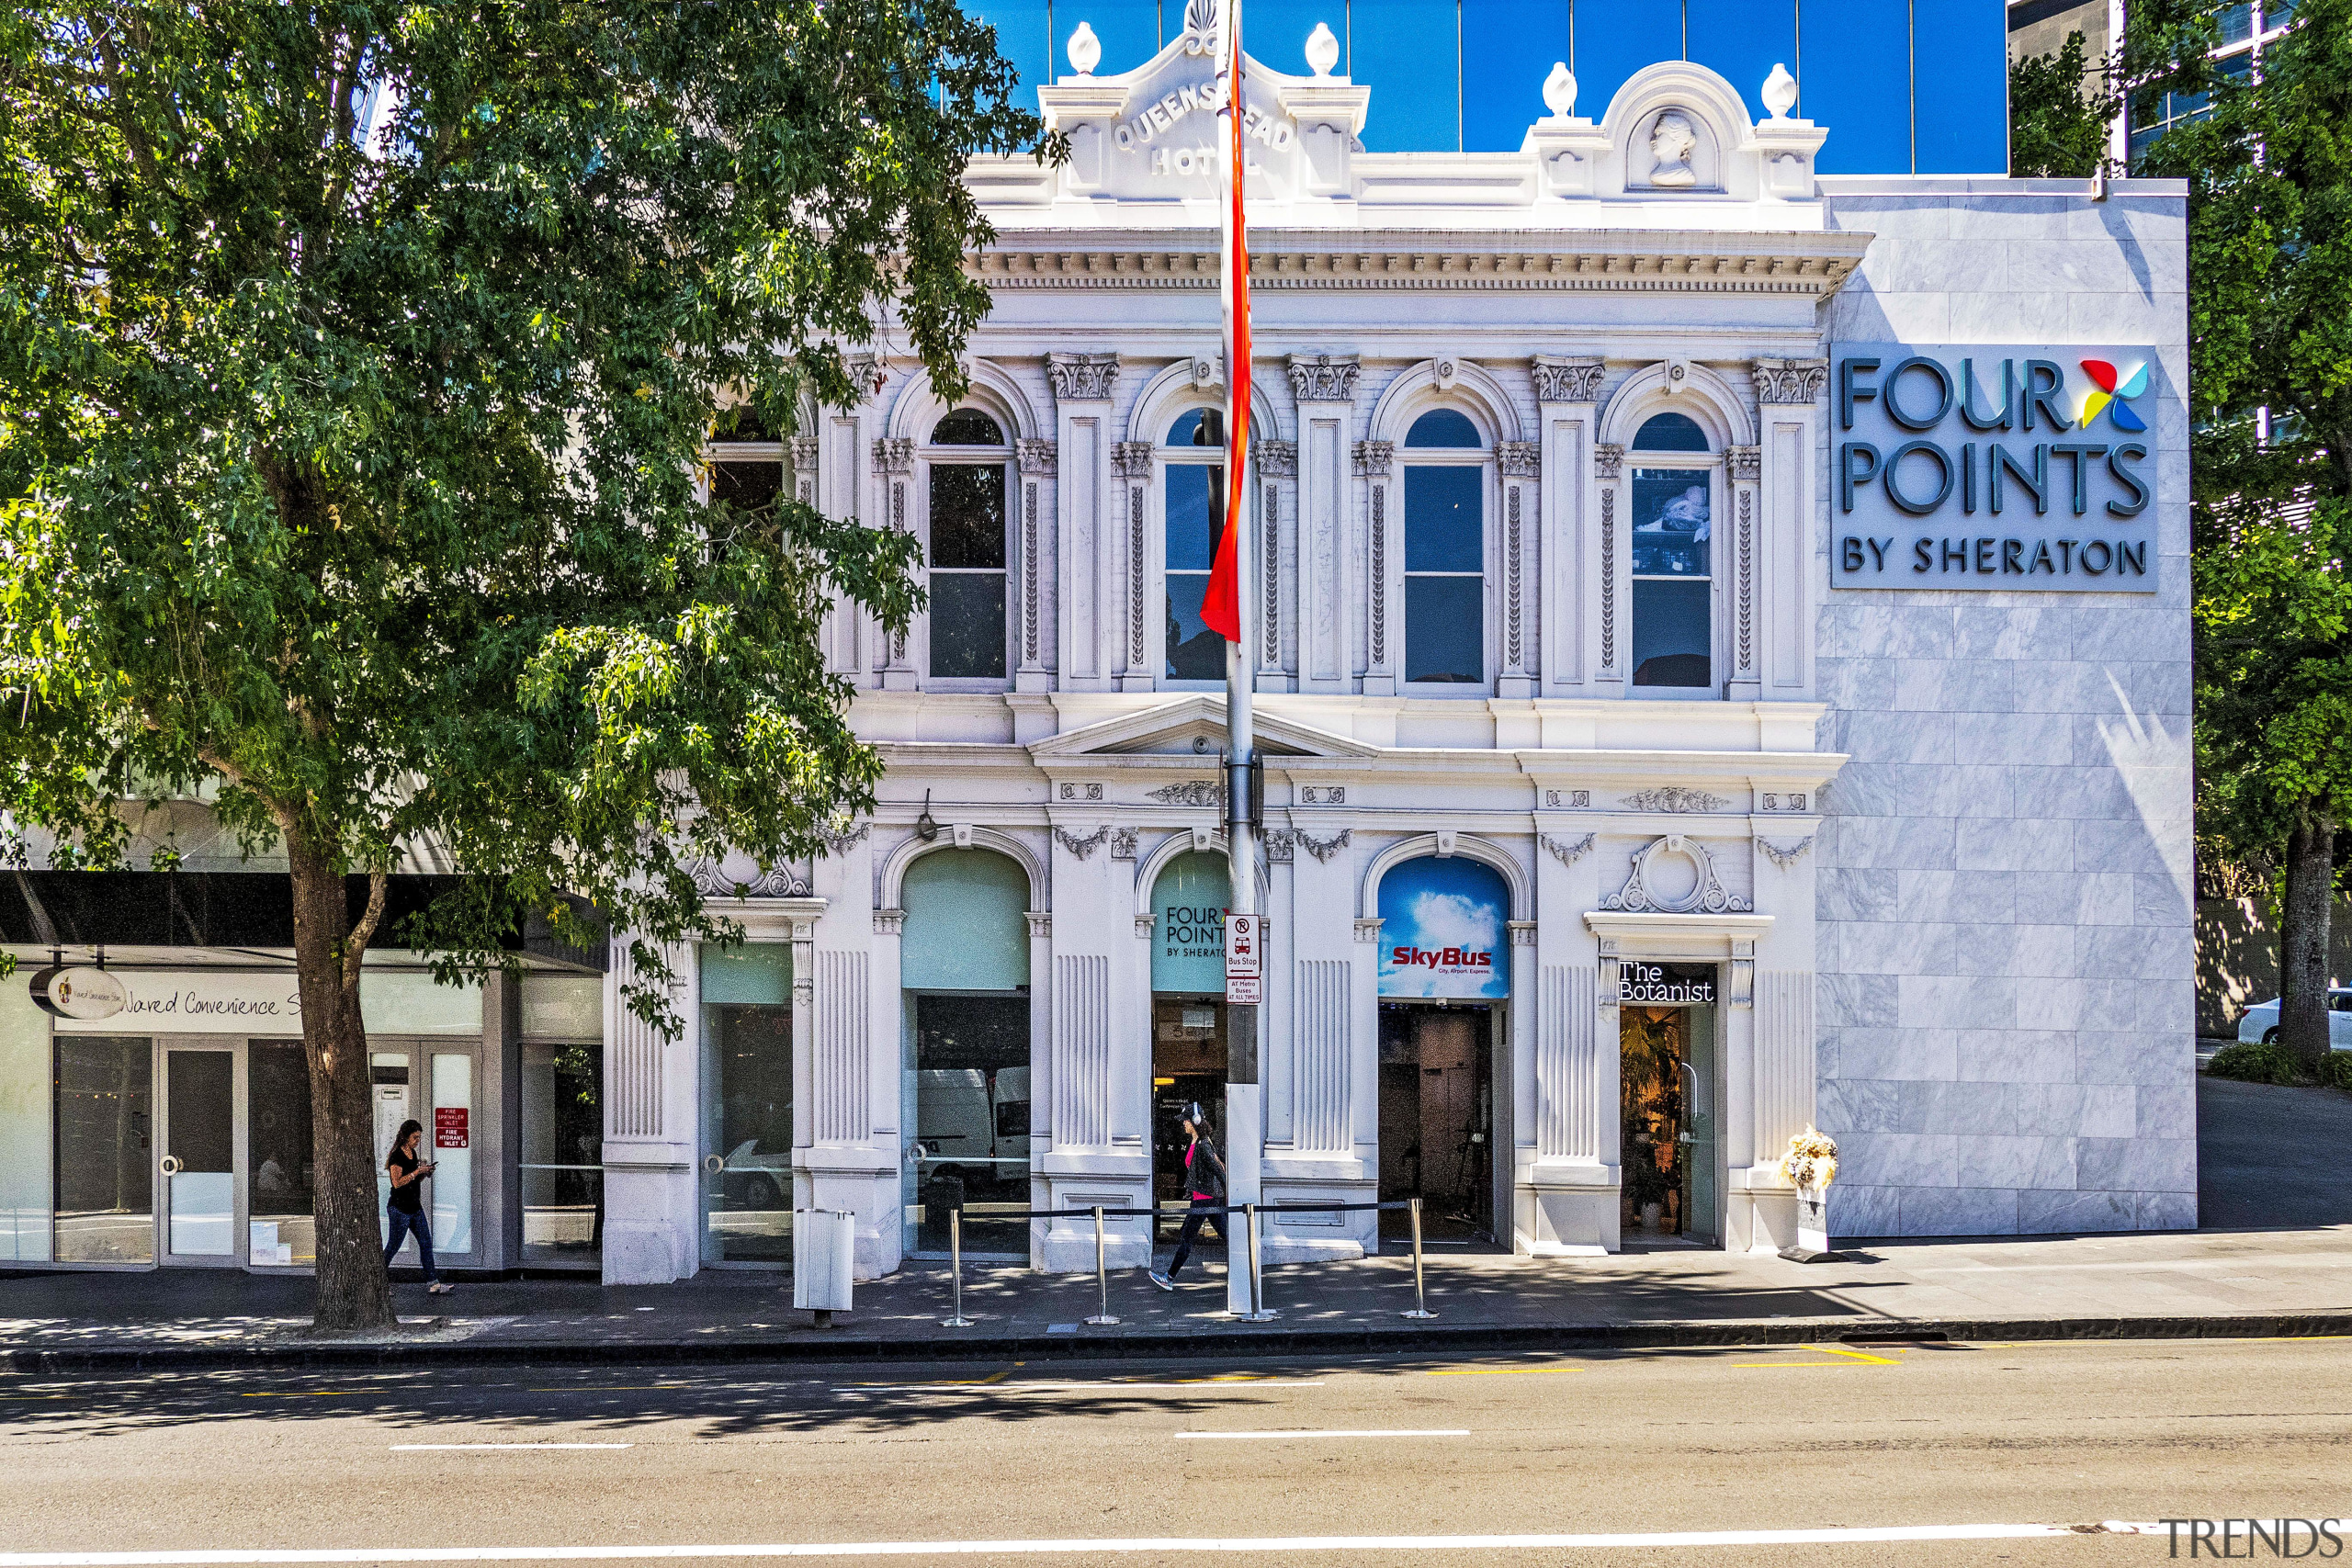 The façade of the original Queen's Head pub architecture, building, facade, Four Points, Sheraton, Hotel, original facade, Russell Poperty Group, Dominion Constructors